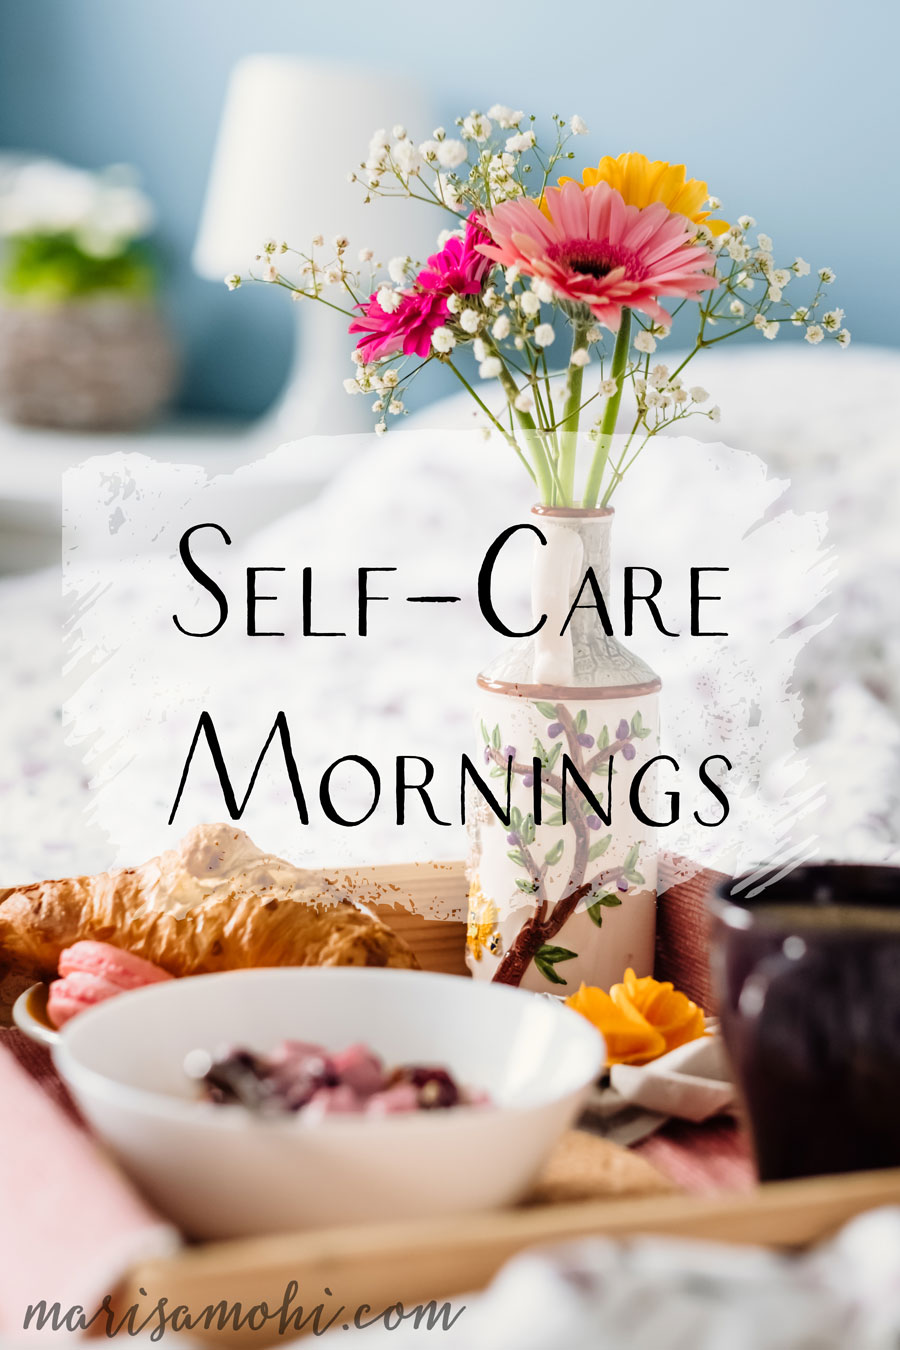 Self-Care Mornings